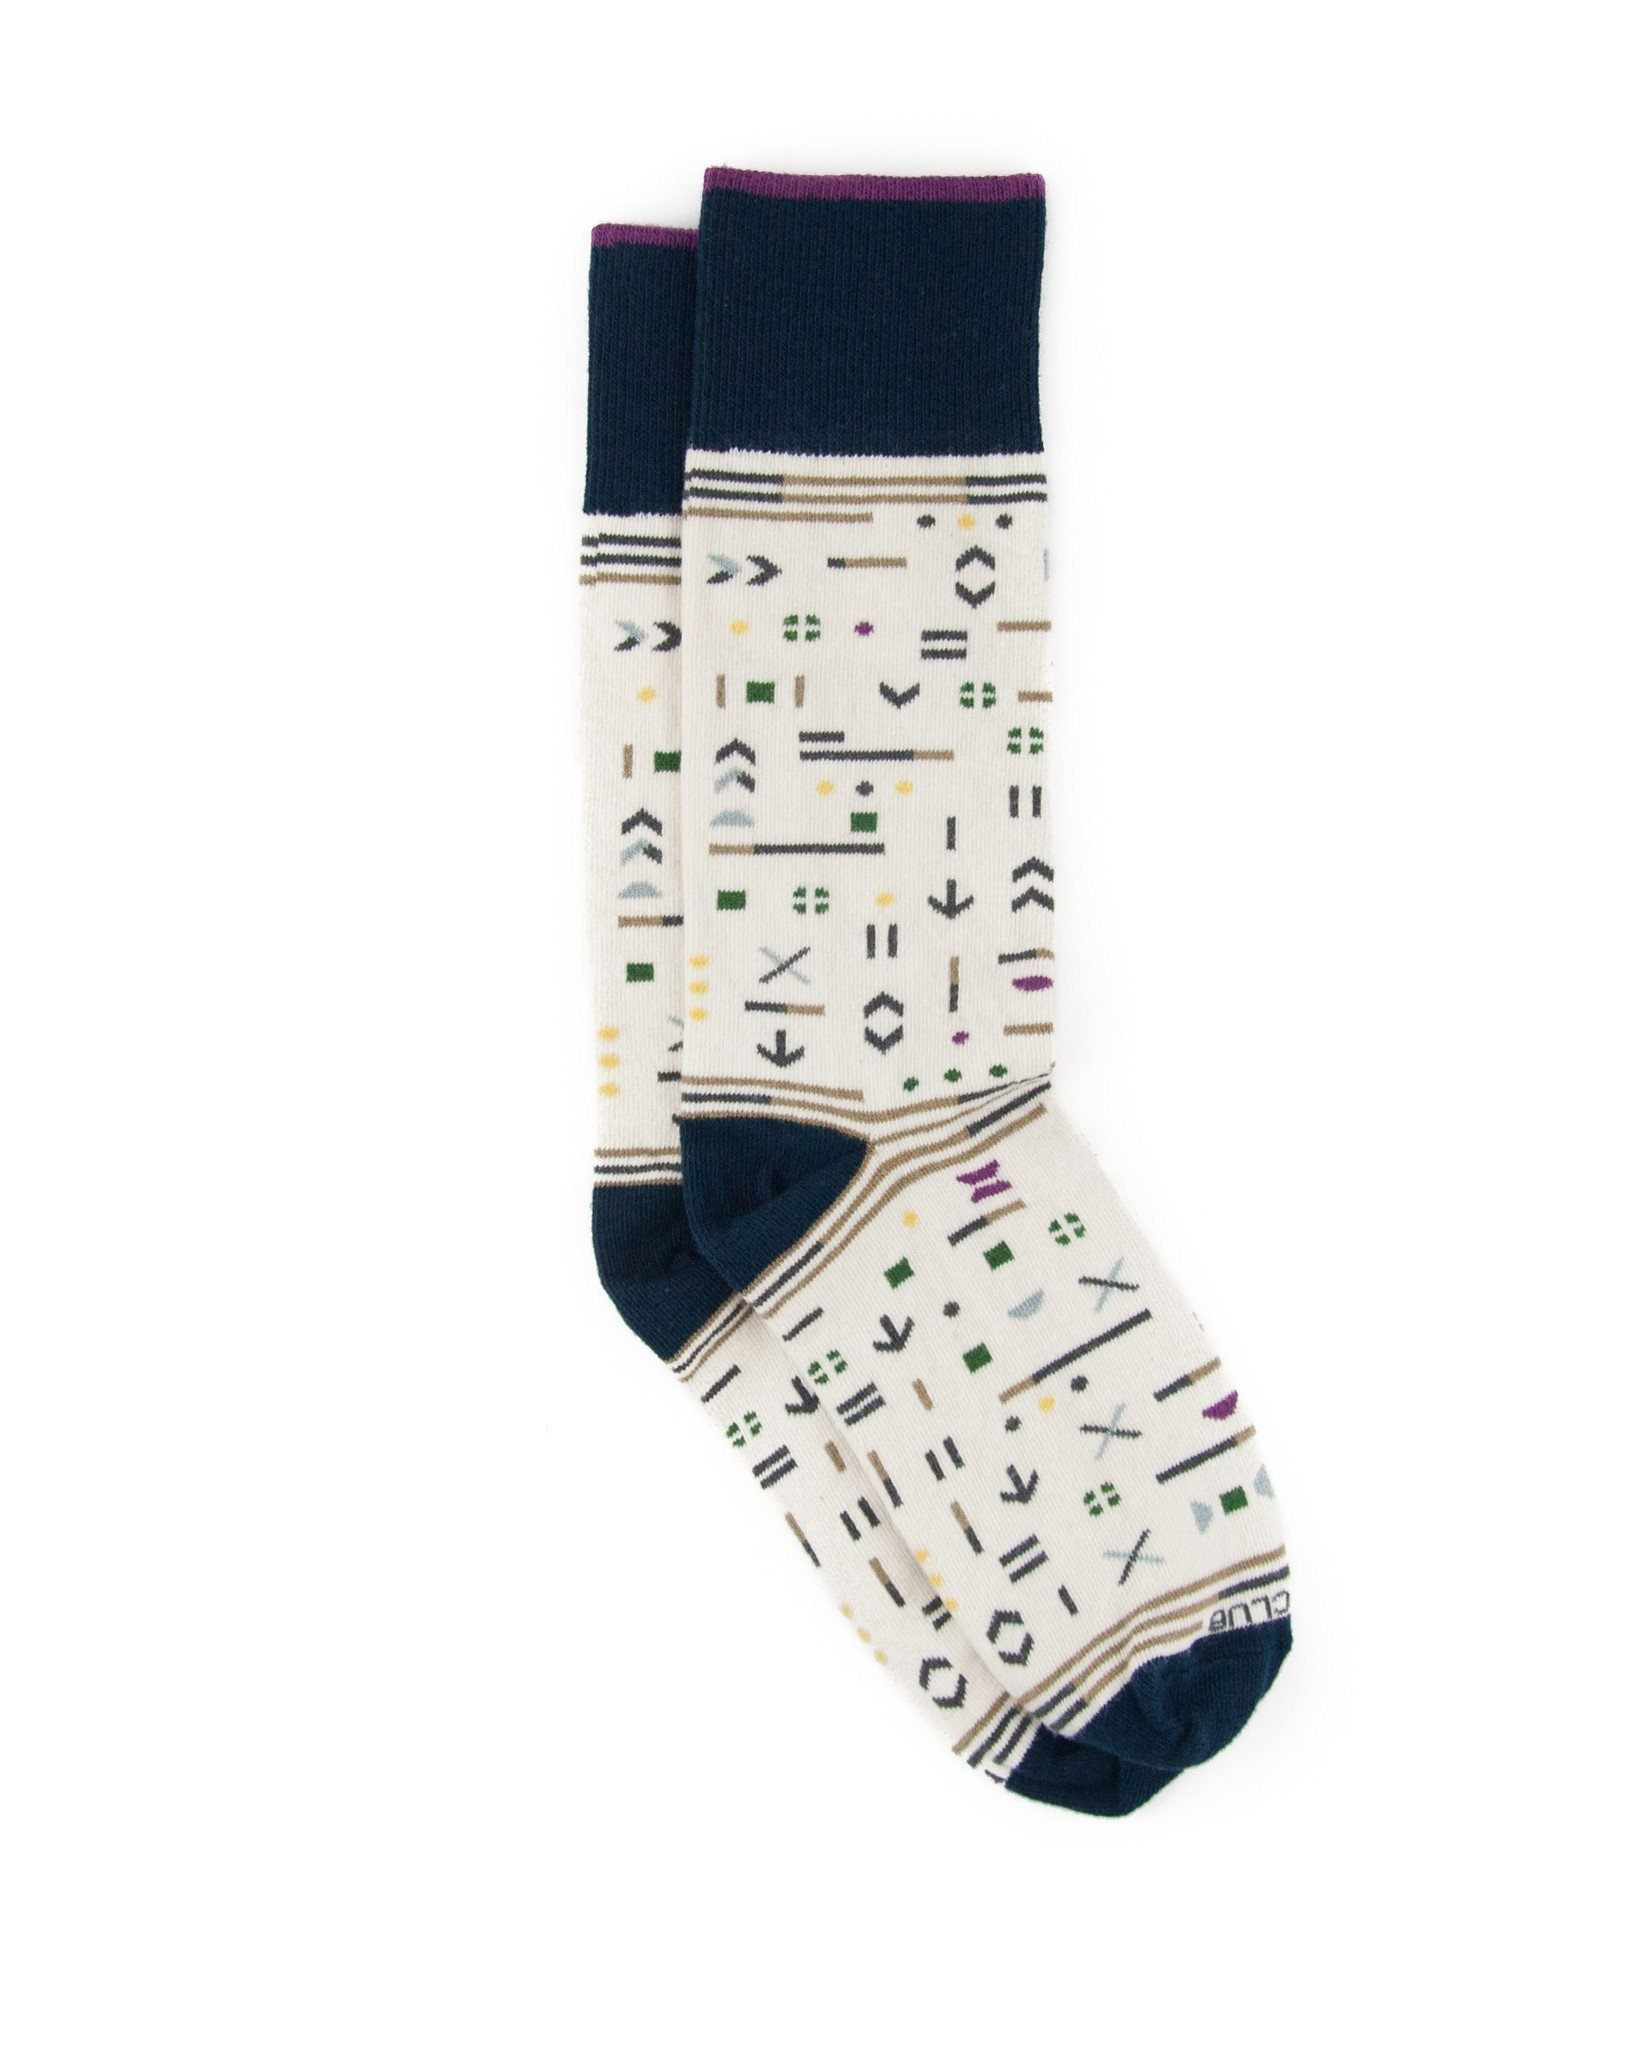 The Kepler - Sock Club Store